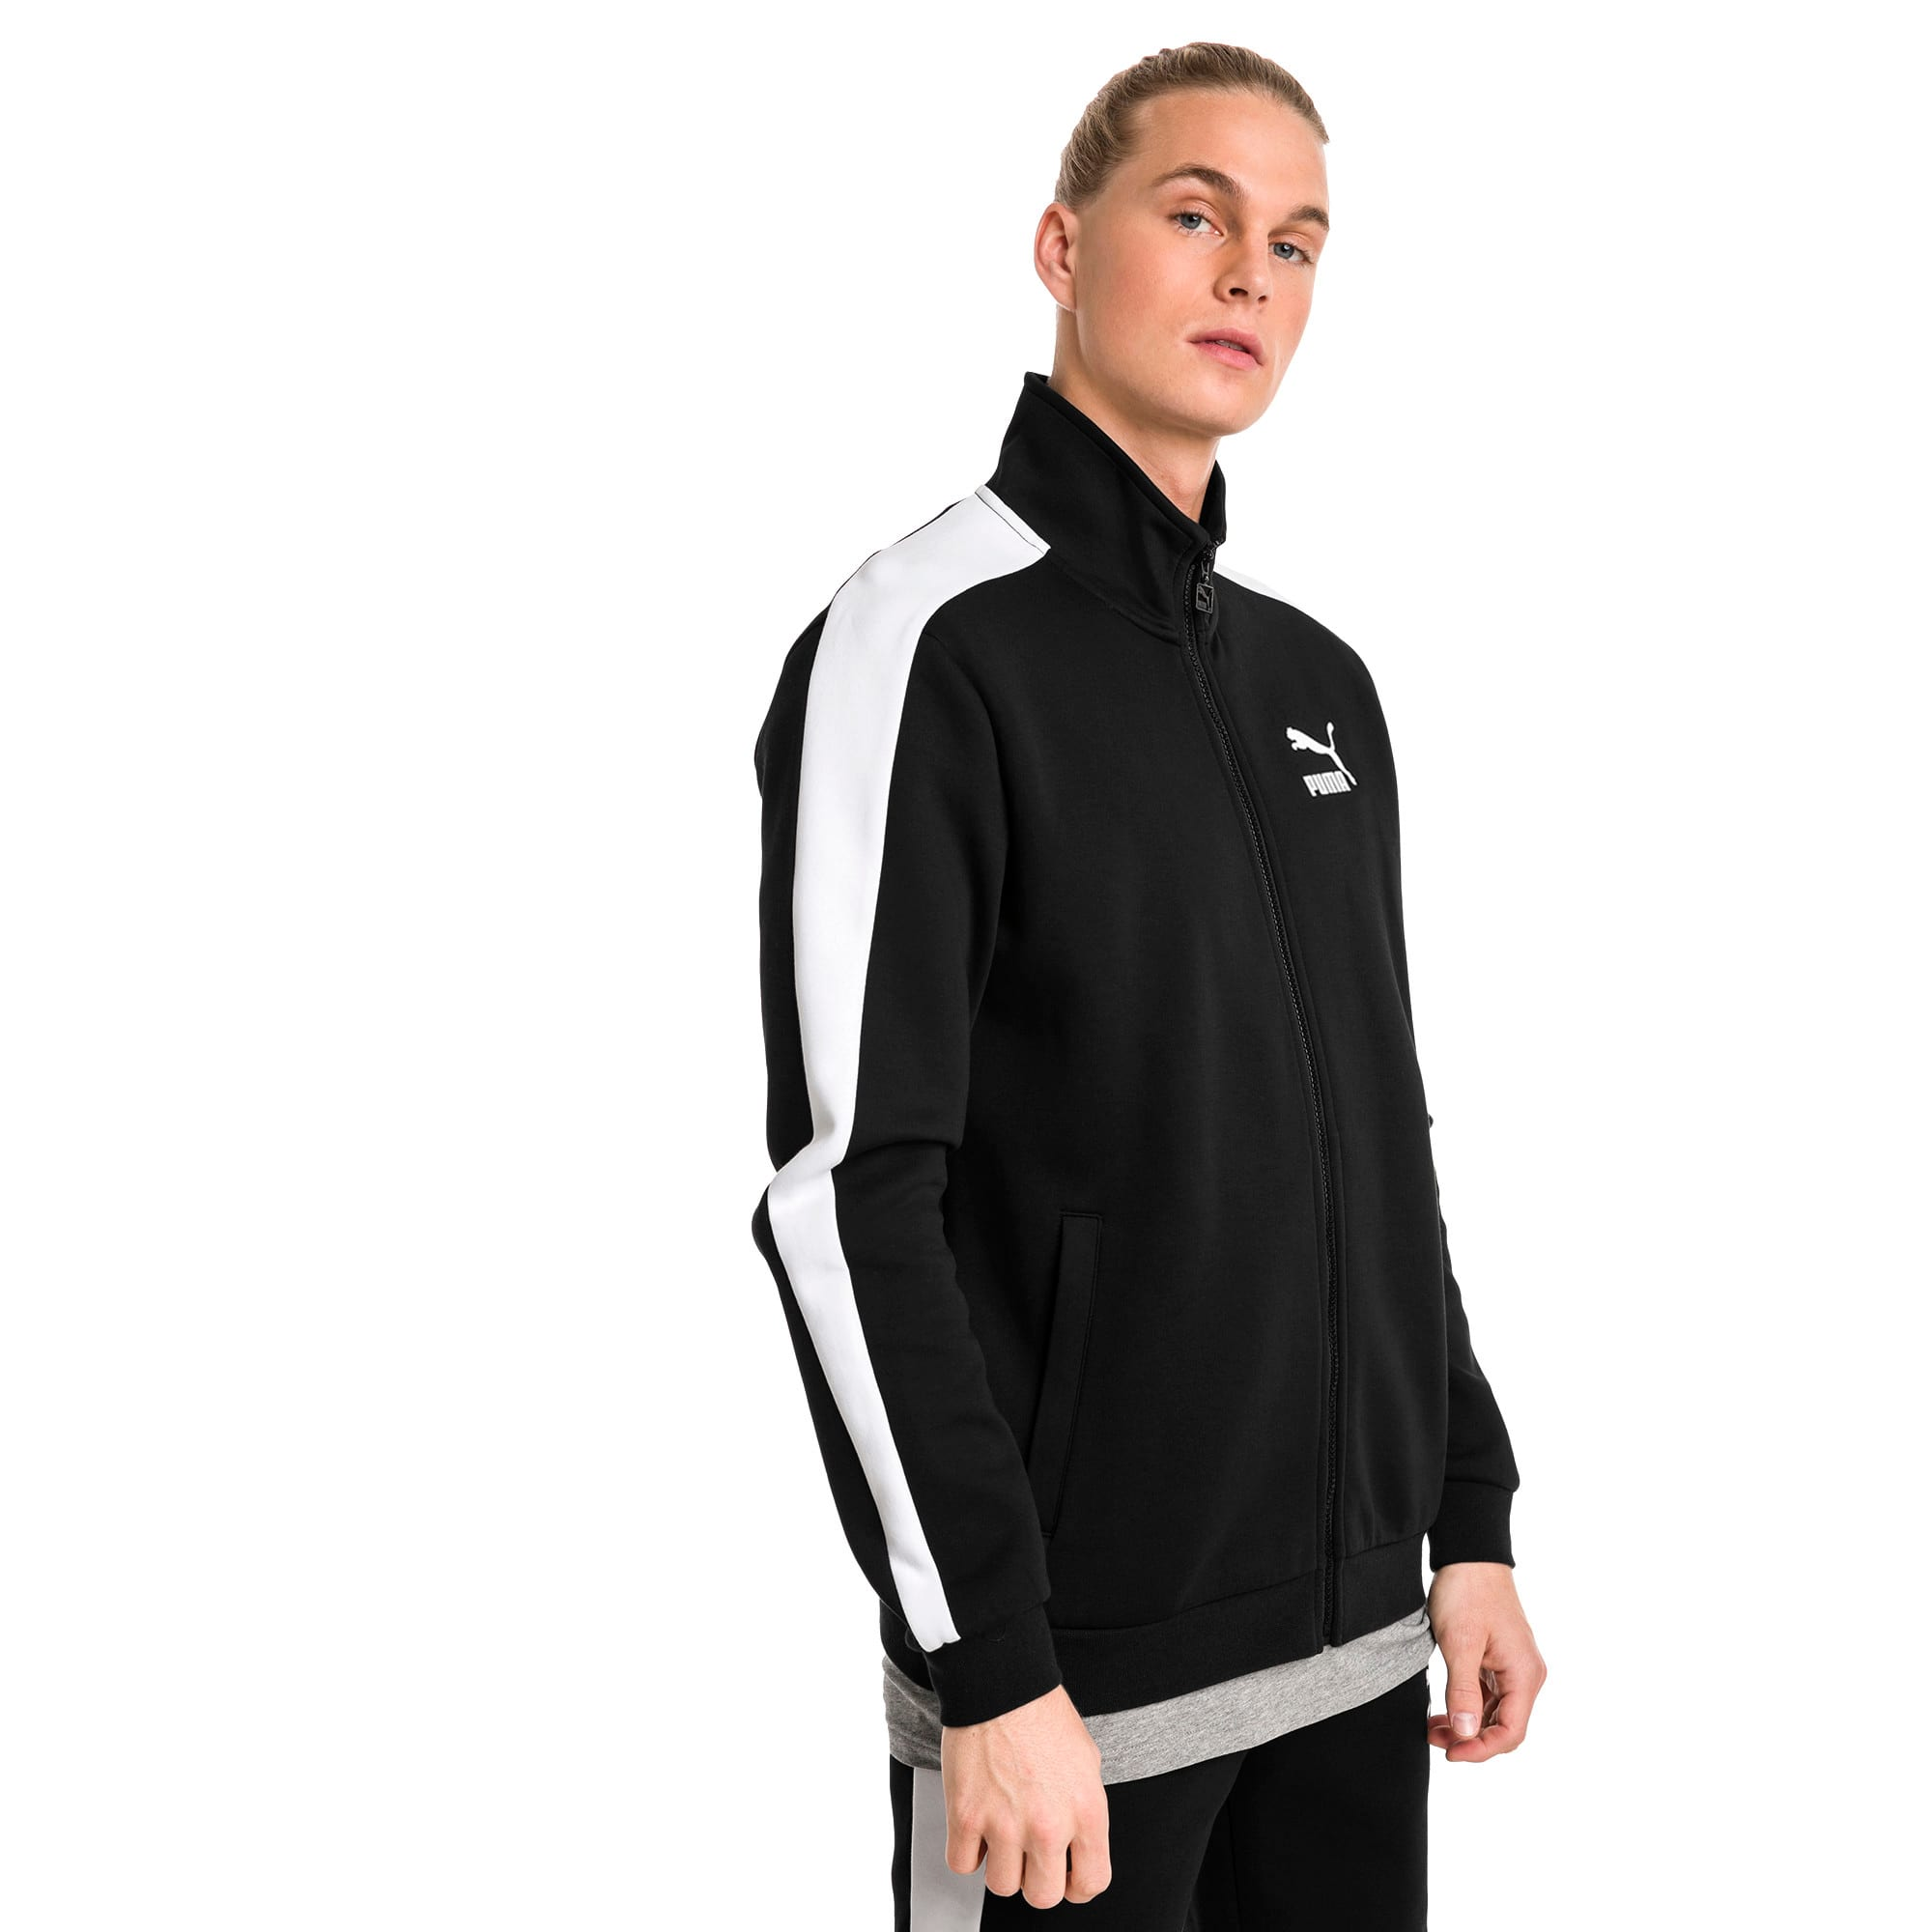 Thumbnail 2 of Archive Iconic T7 Double Knit Men's Track Jacket, Cotton Black, medium